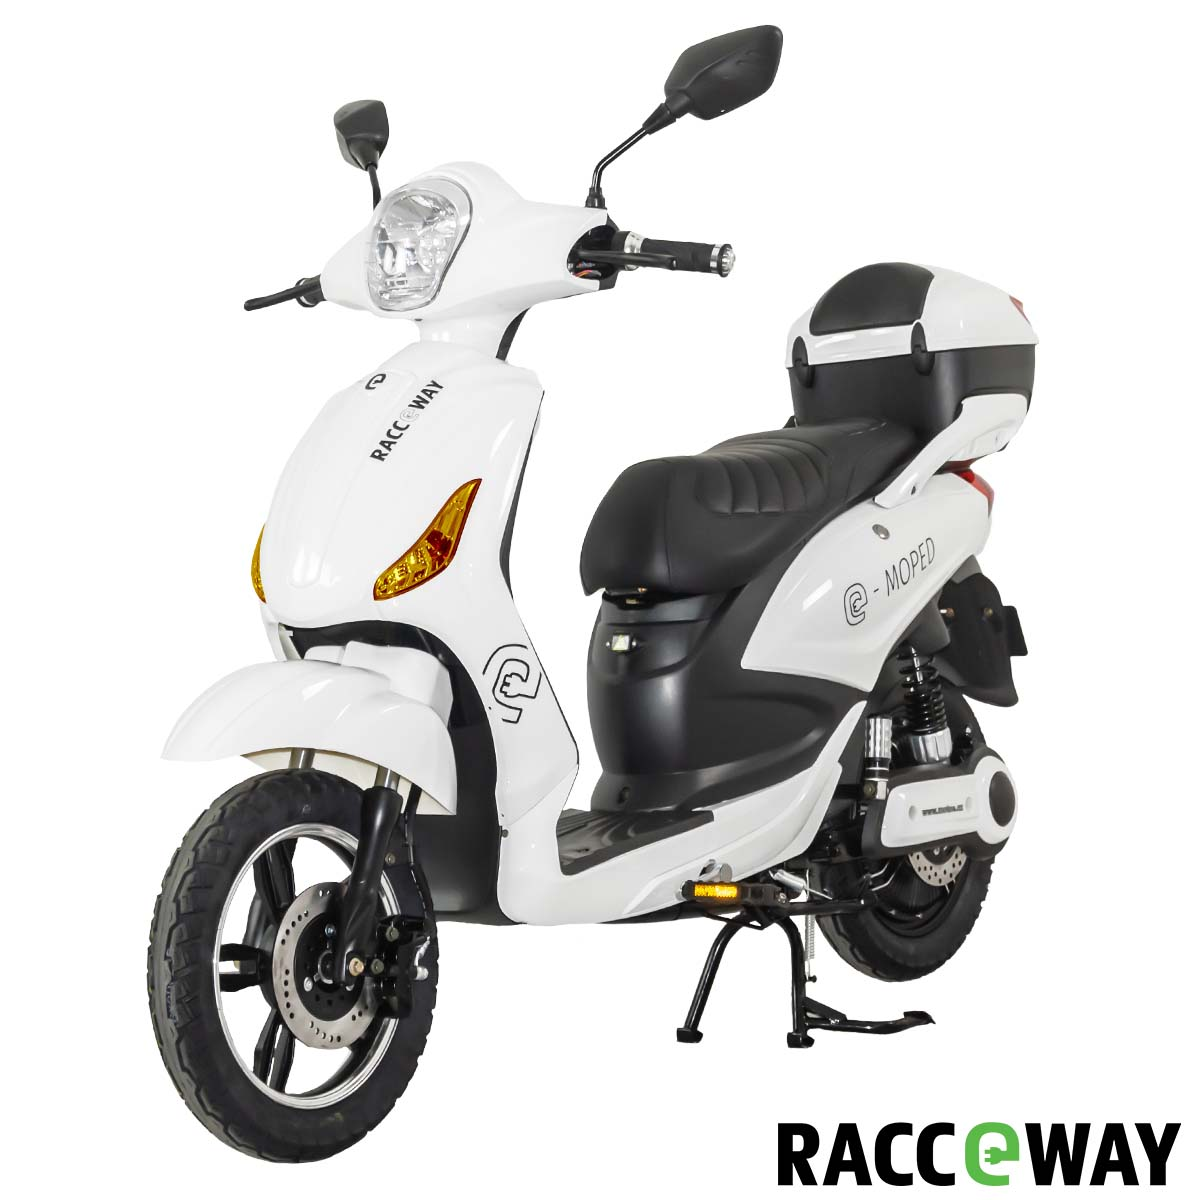 https://www.motoe.sk/inshop/catalogue/products/pictures/motoe-1m-02_a2.jpg?timestamp=20210802062835